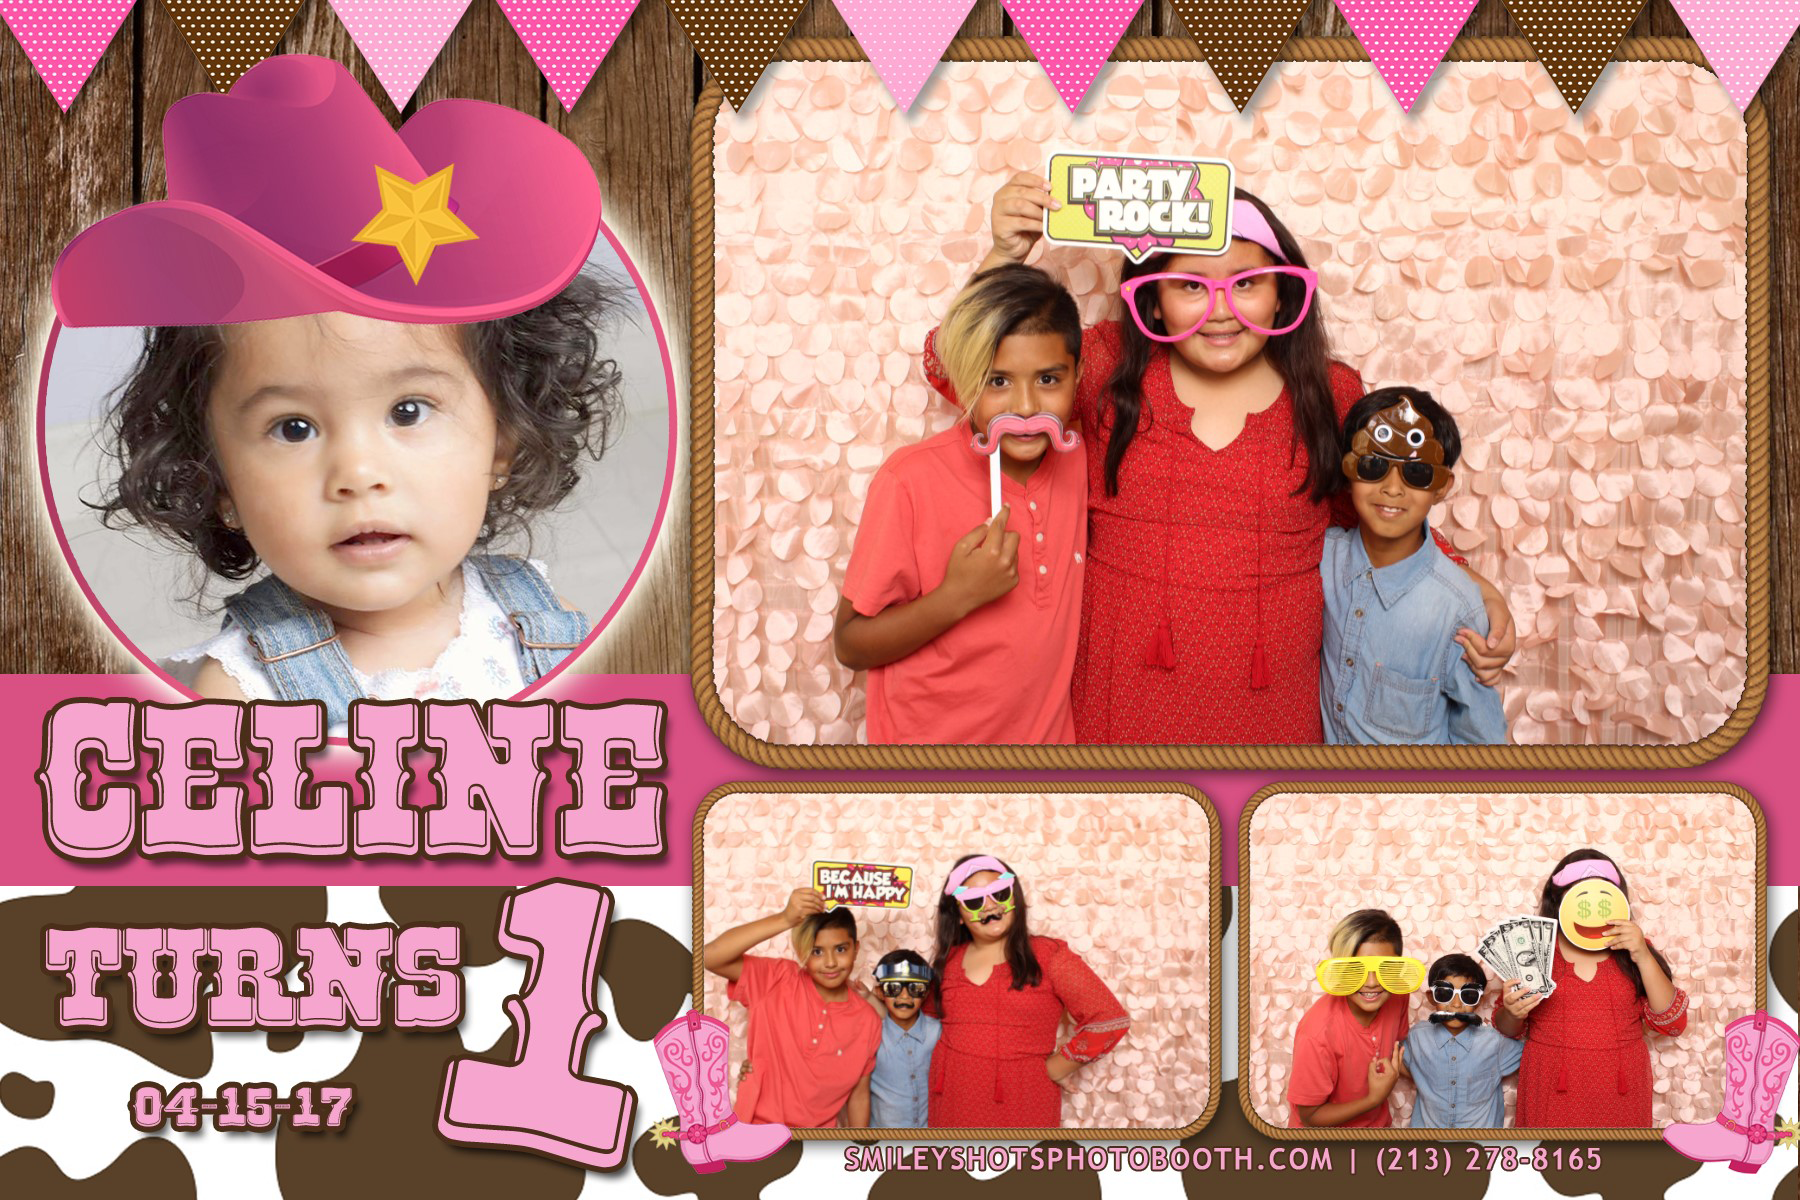 Celine turns 1 Smiley Shots Photo Booth Photobooth (8).png